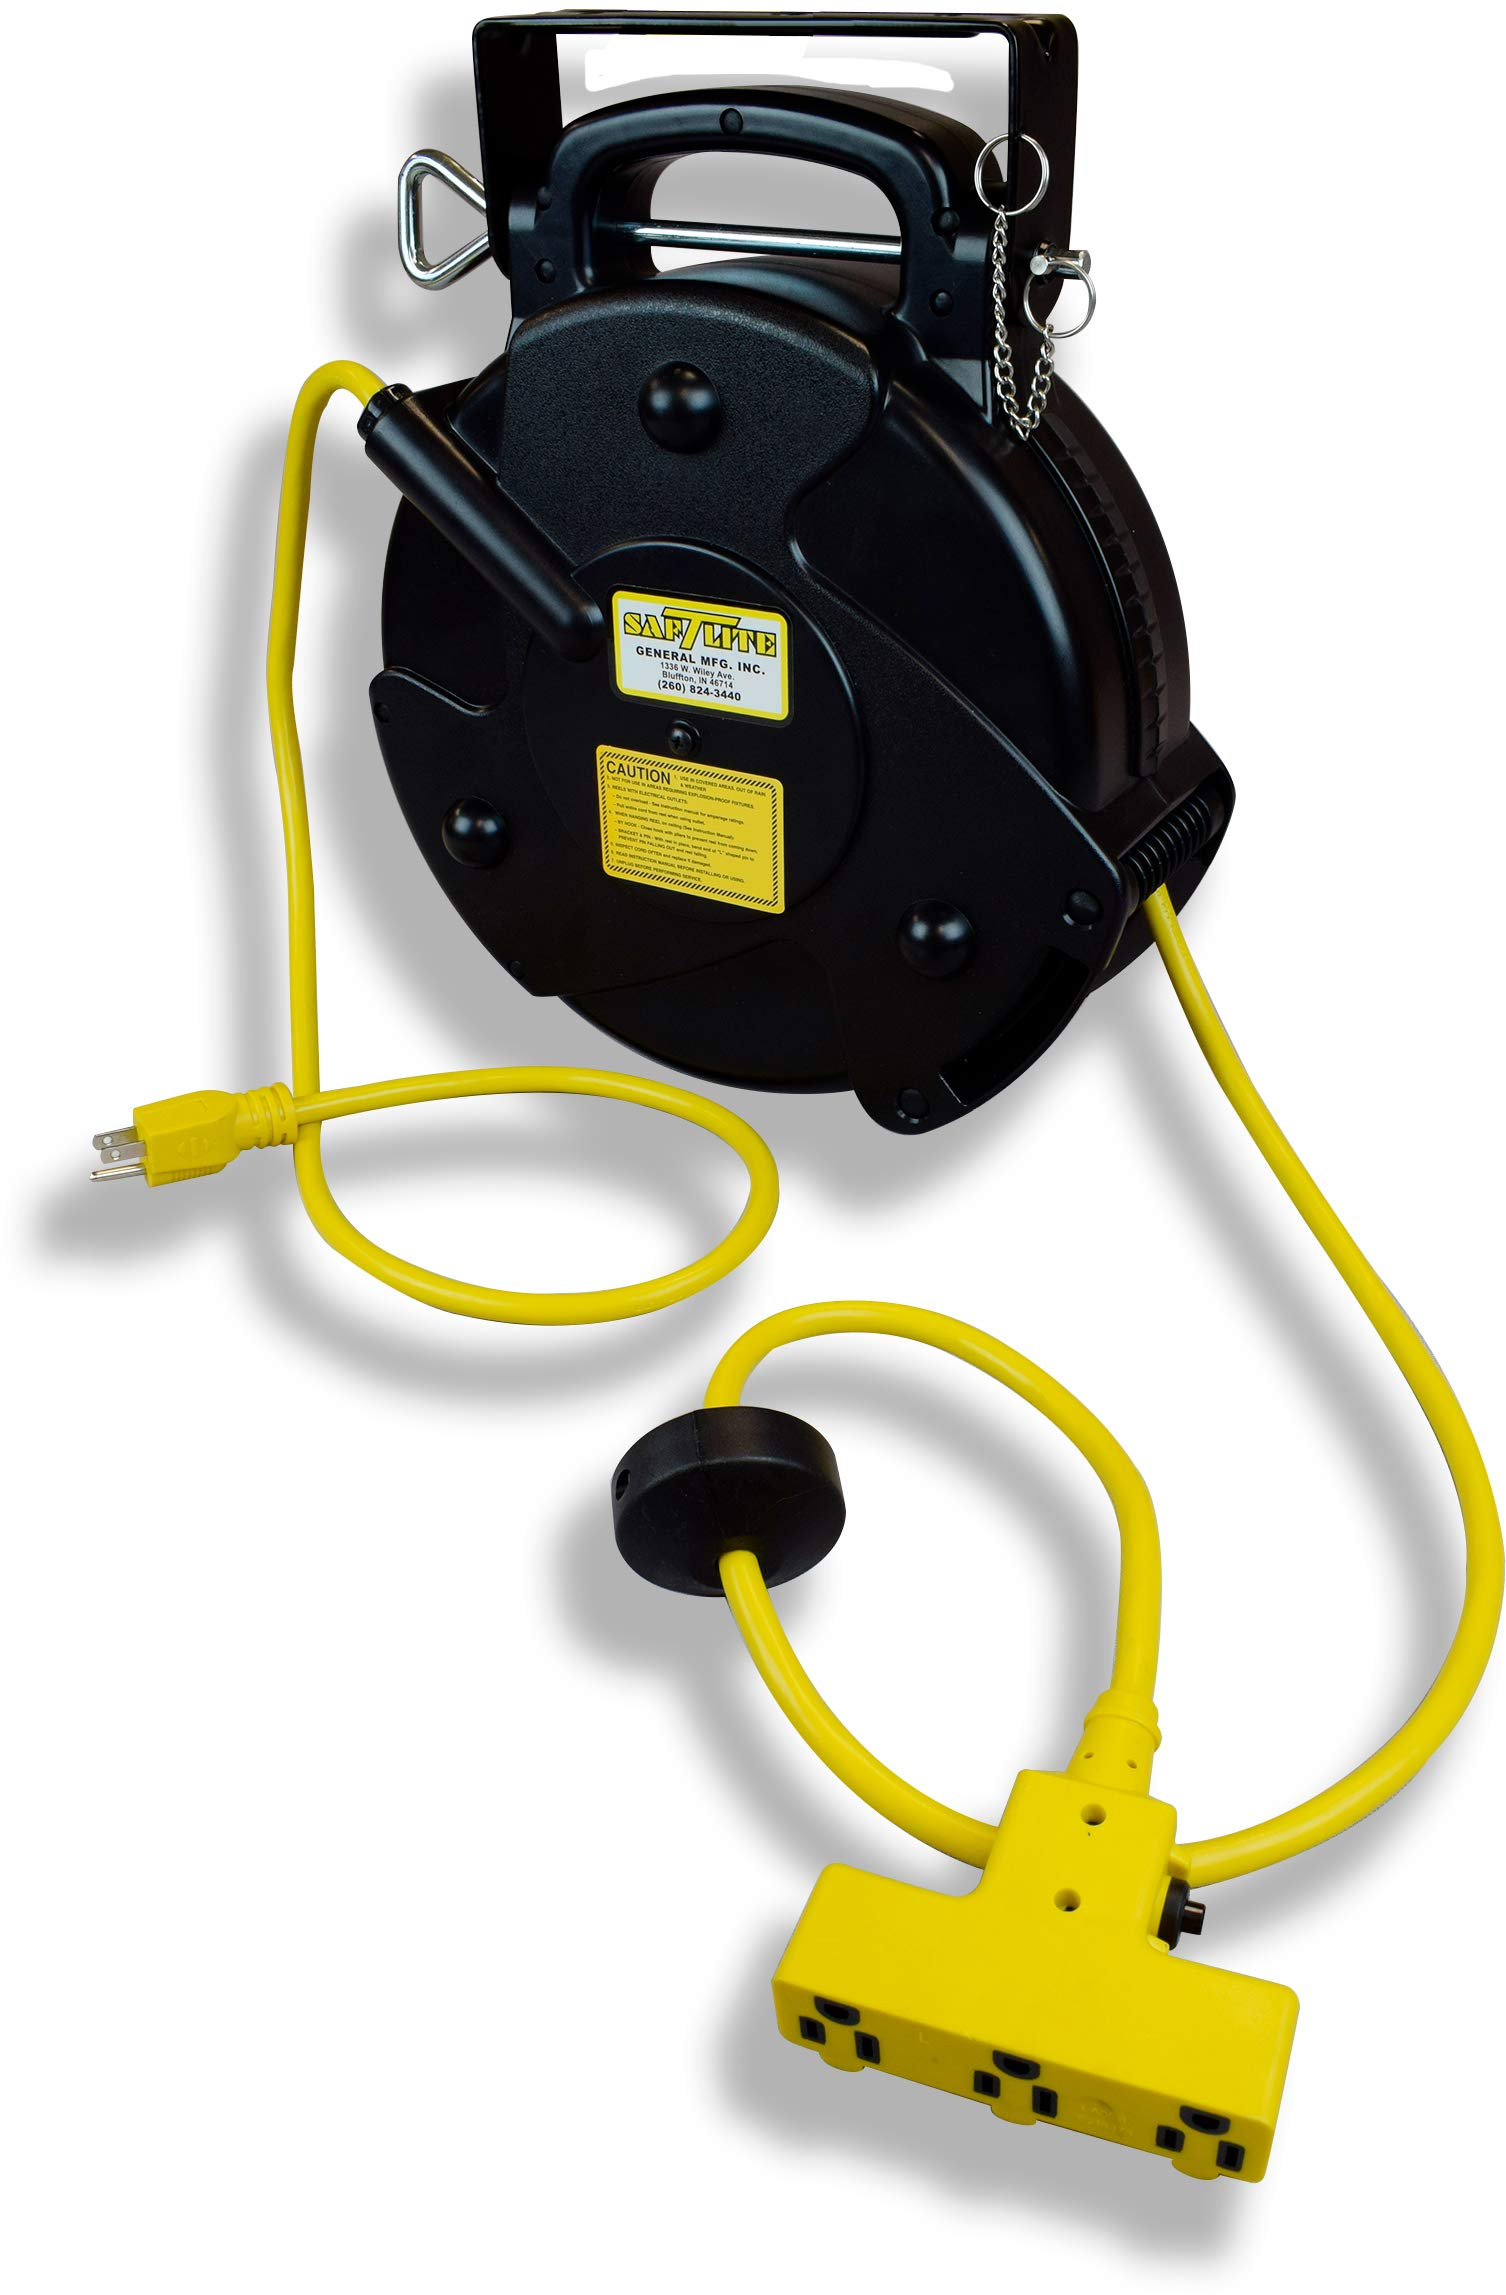 Saf-T-Lite- 2200-3000 Mid Size Portable Power Supply Reel, 40' Cord